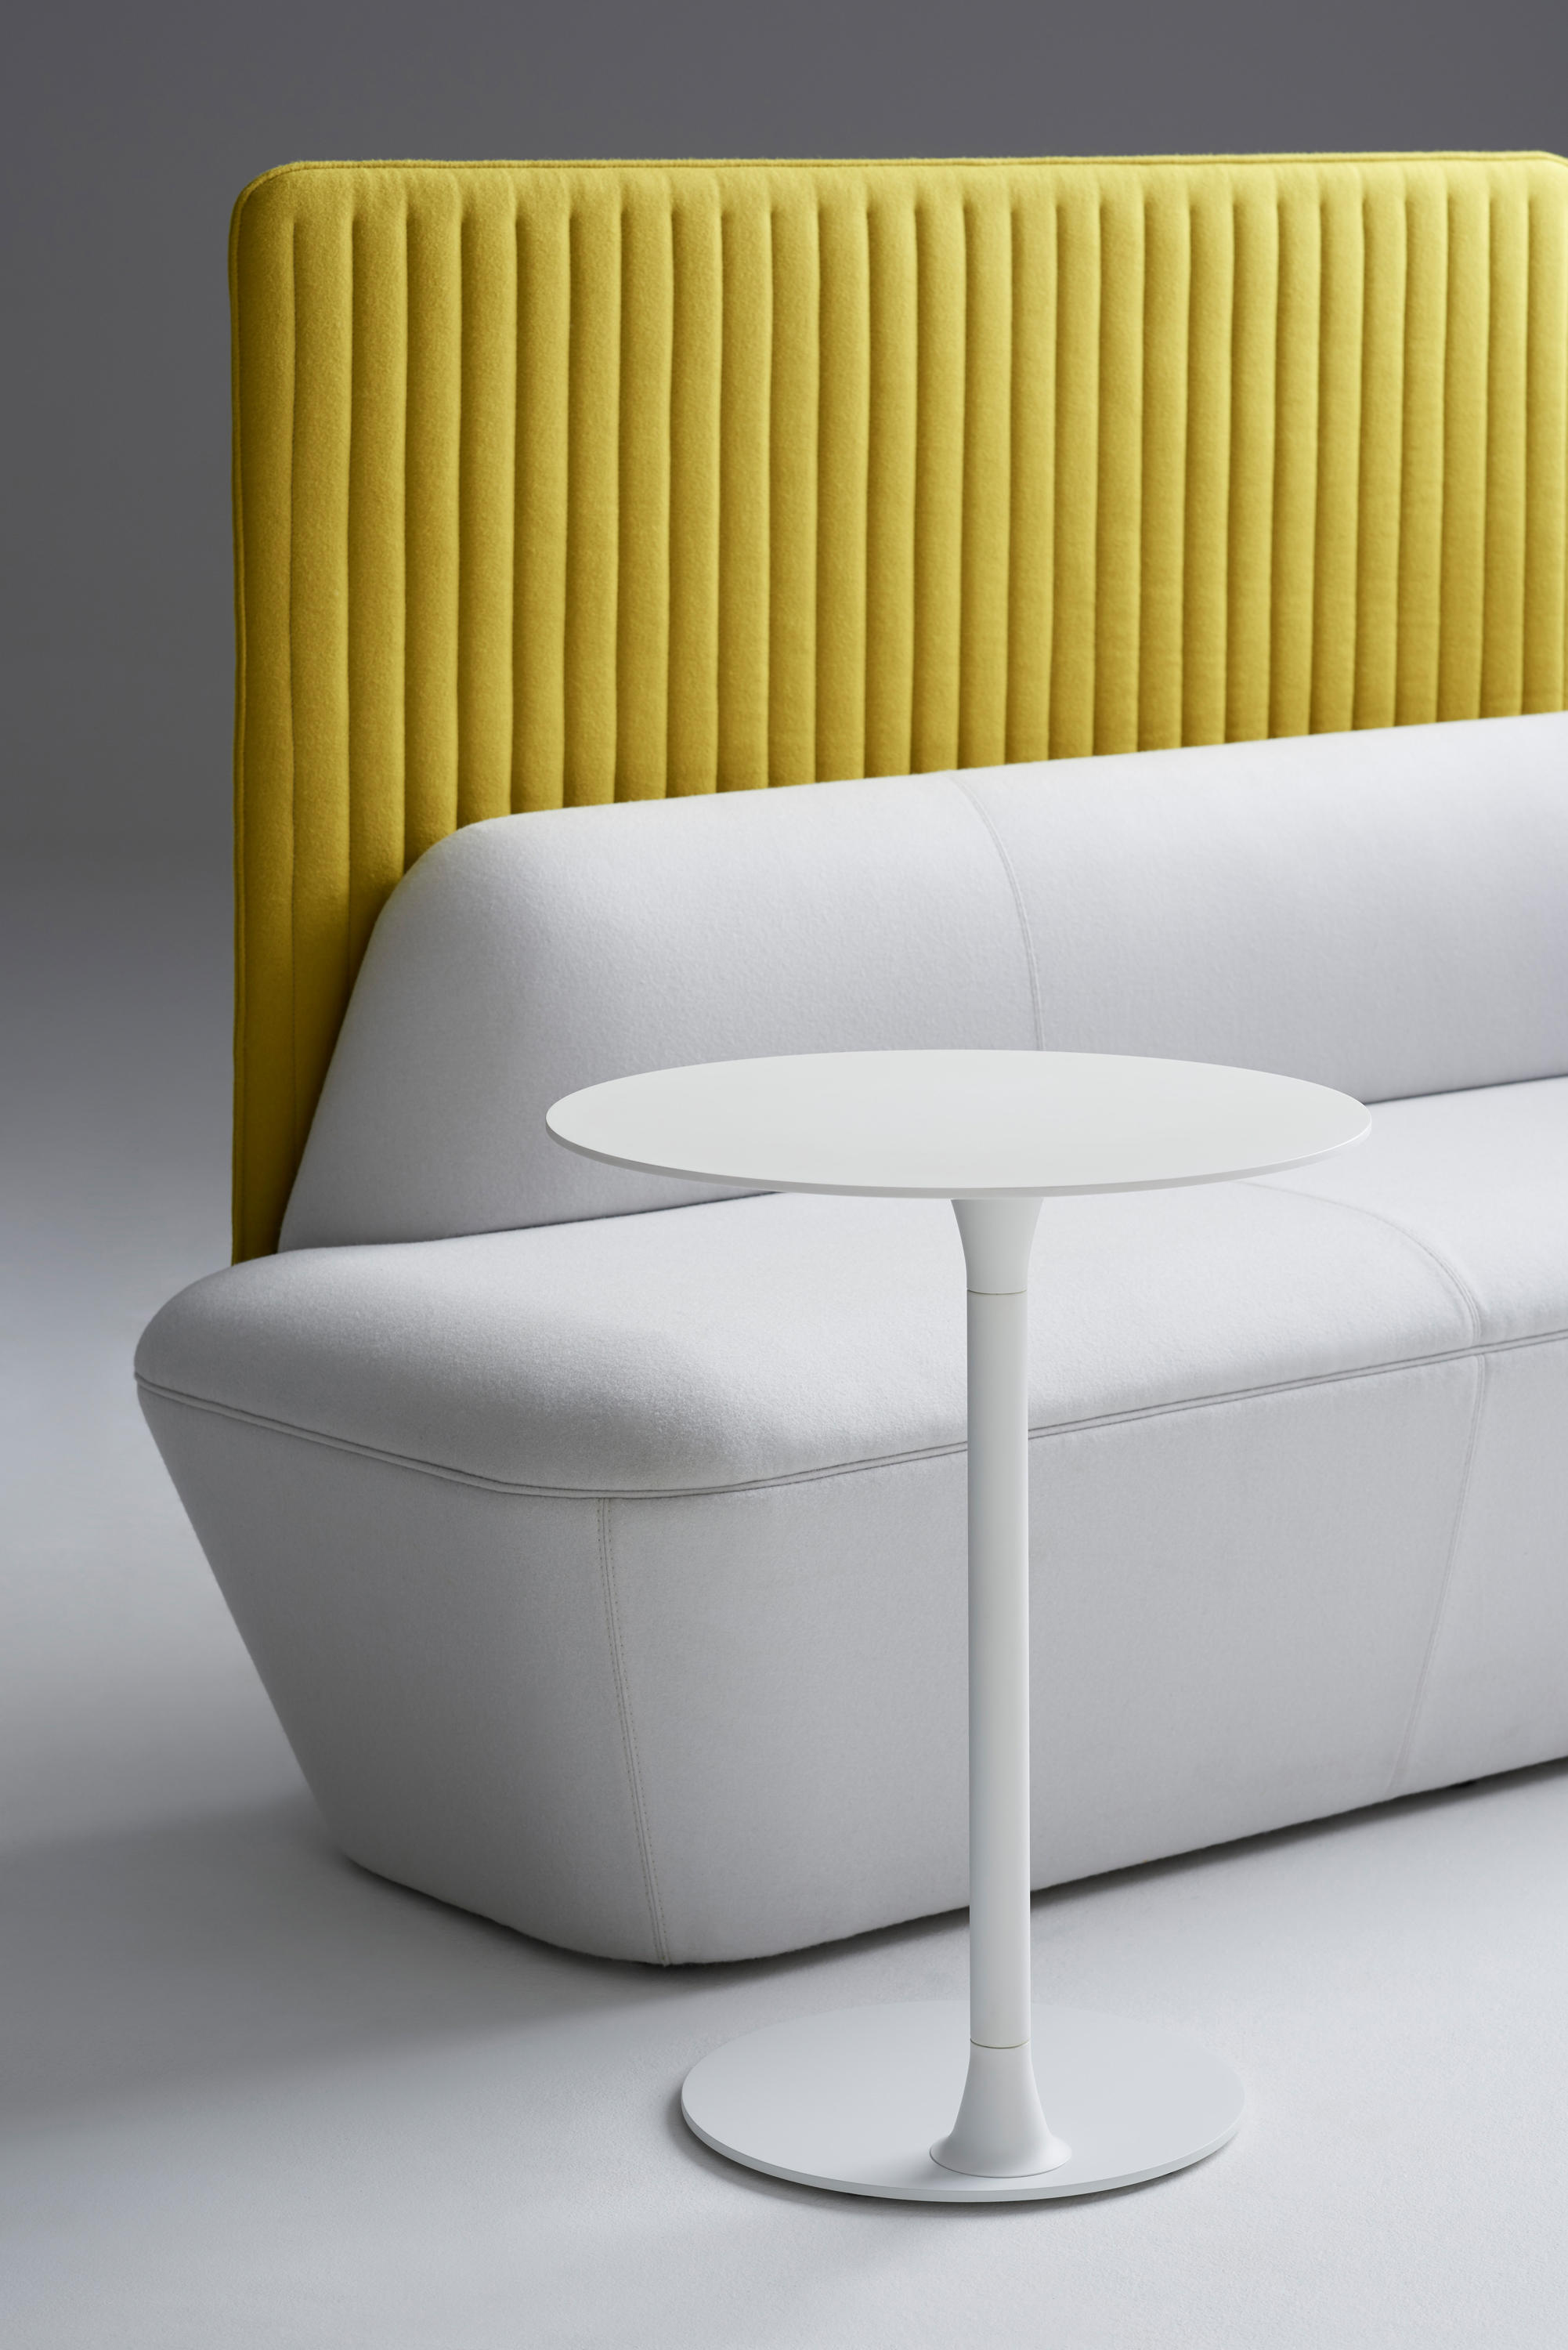 Q6 Sofas From Davis Furniture Architonic